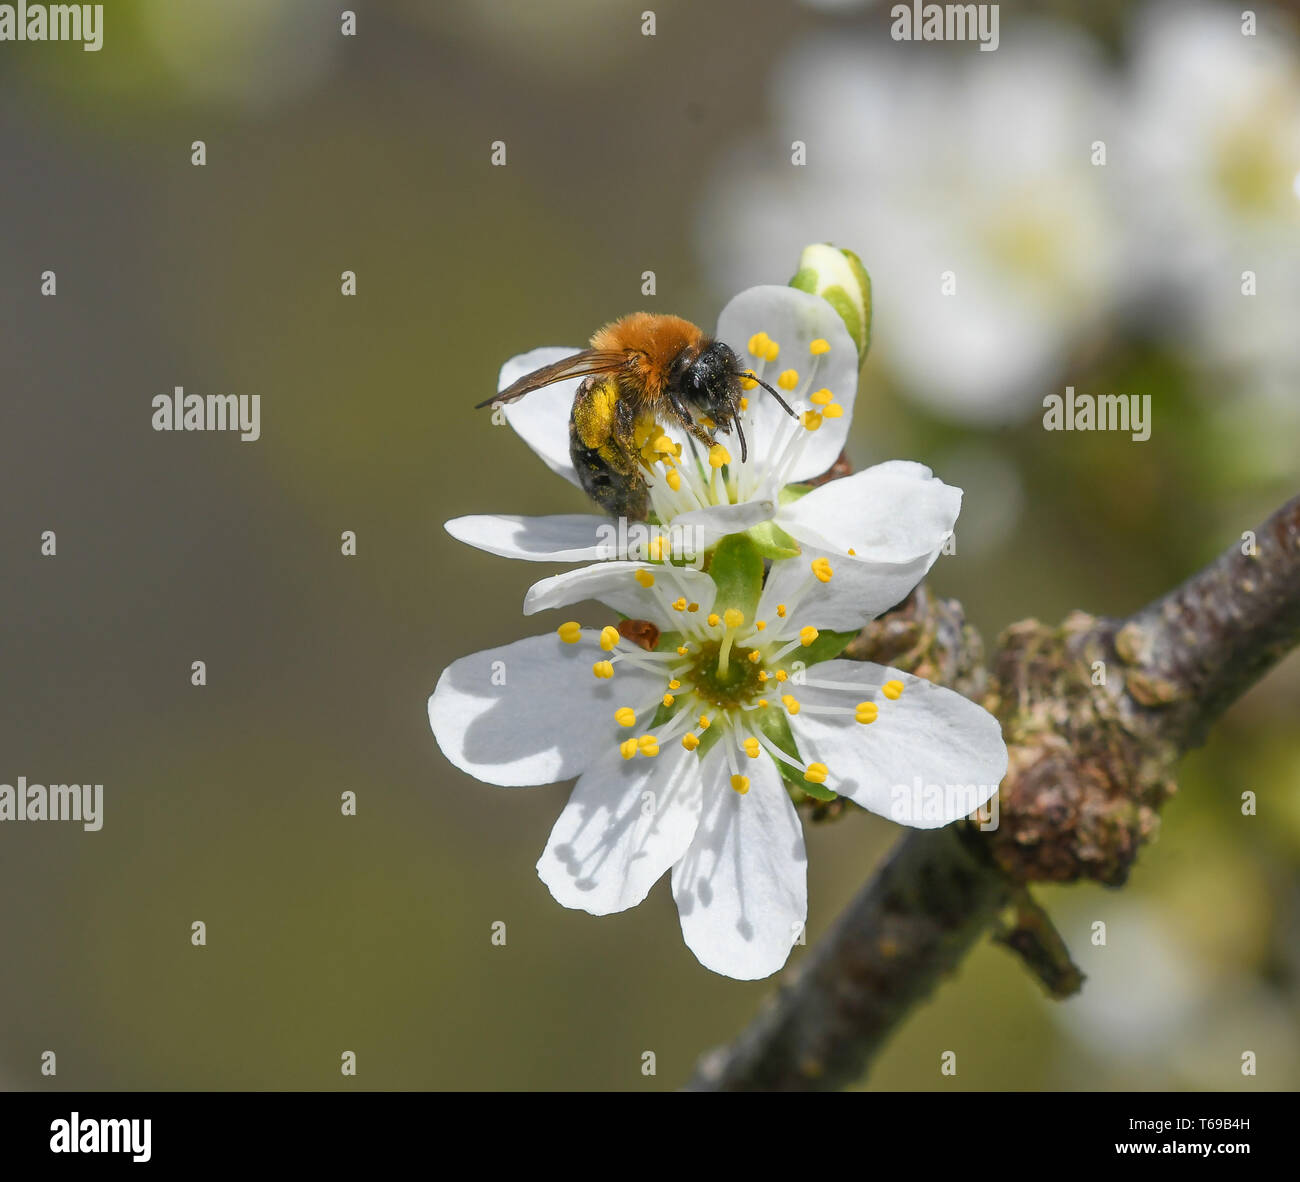 lonely bee feeding on the flower of a plum - Stock Image